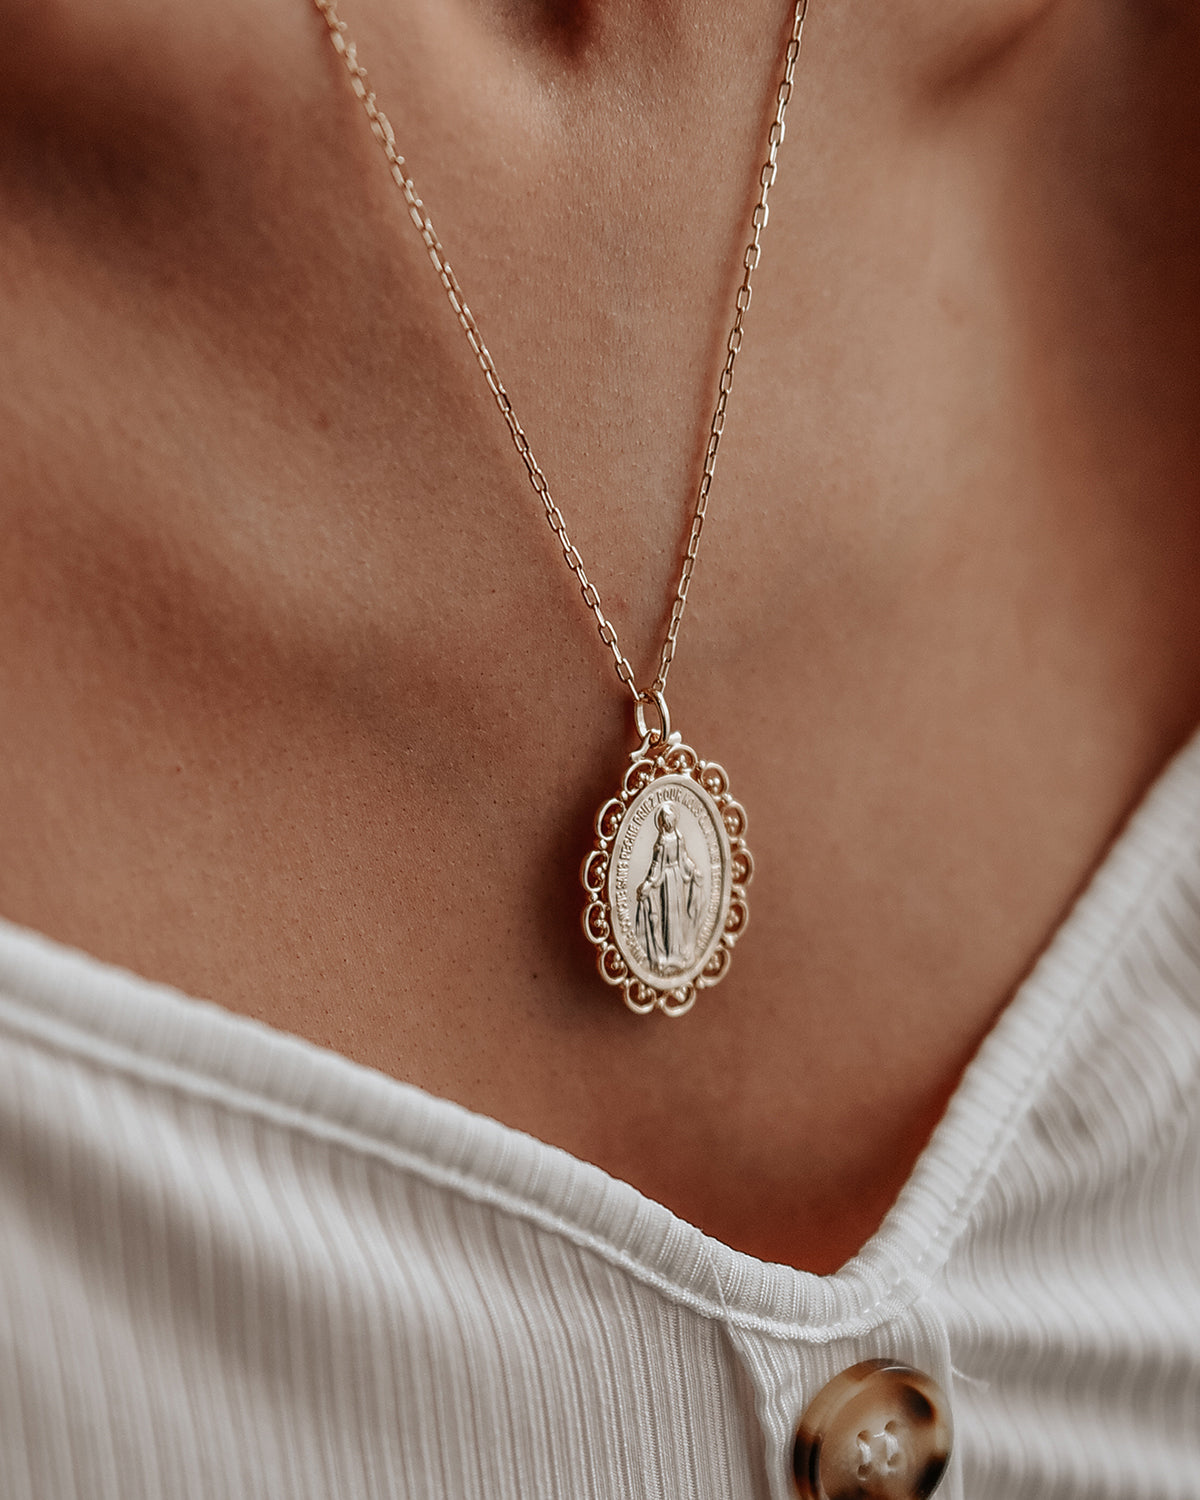 Truly Miraculous Medal Necklace